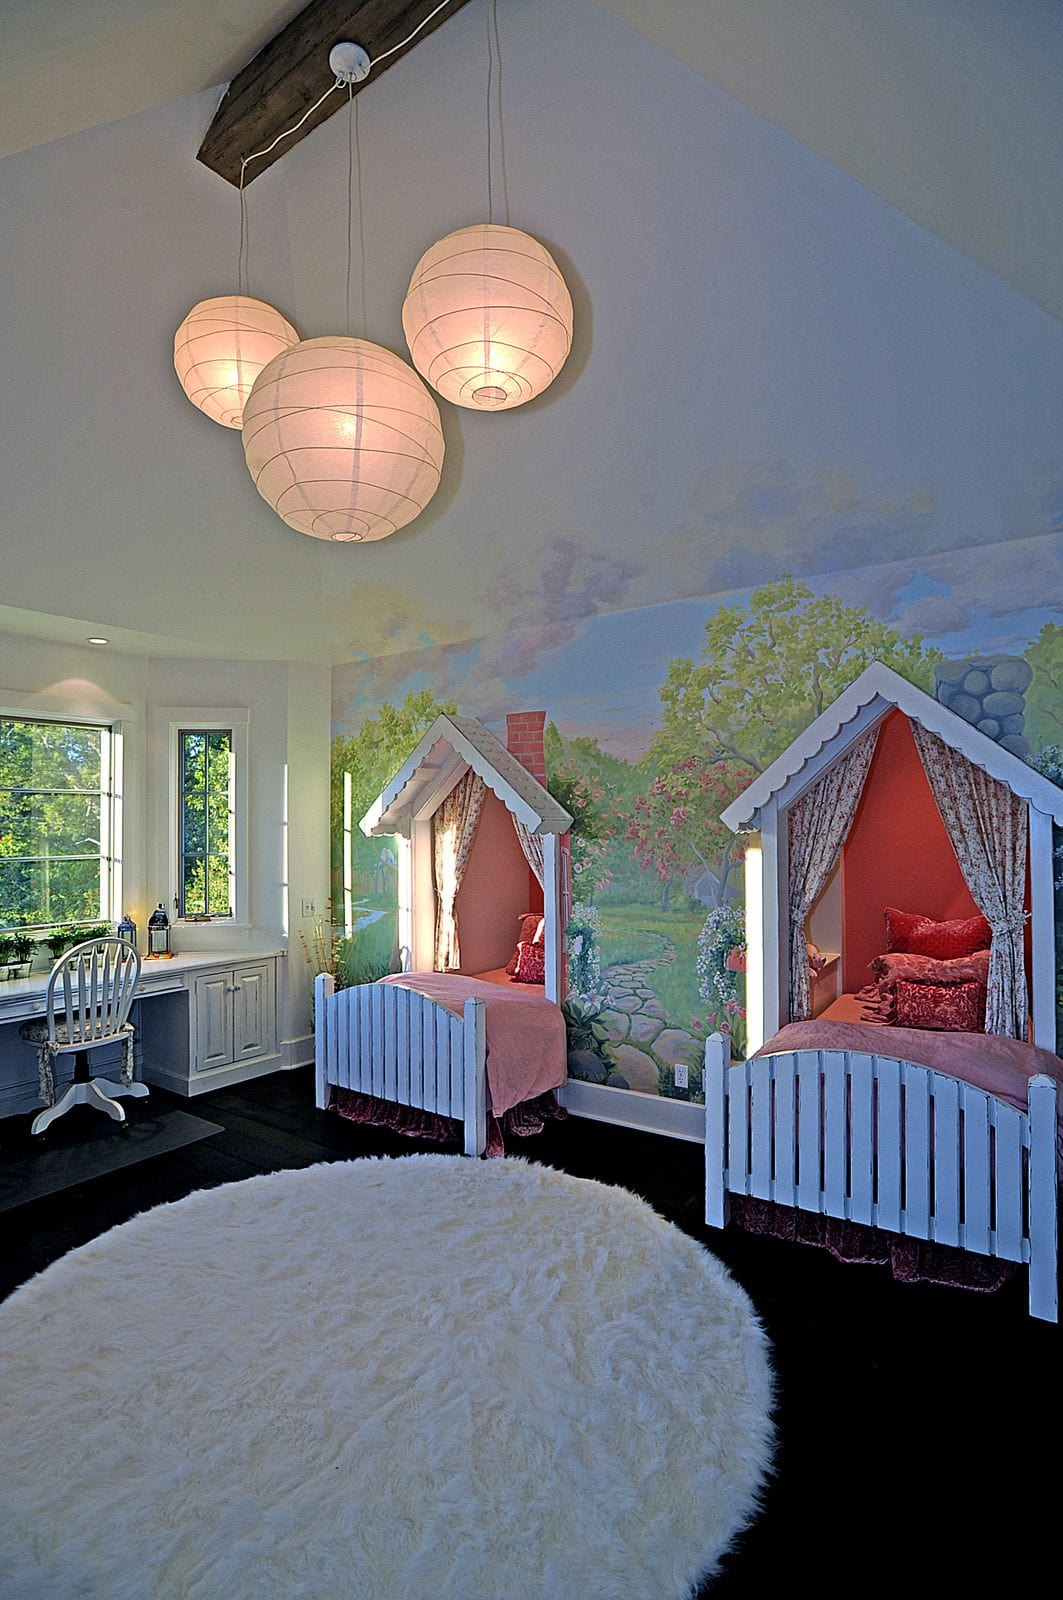 cottage-in-woods-storybook_001